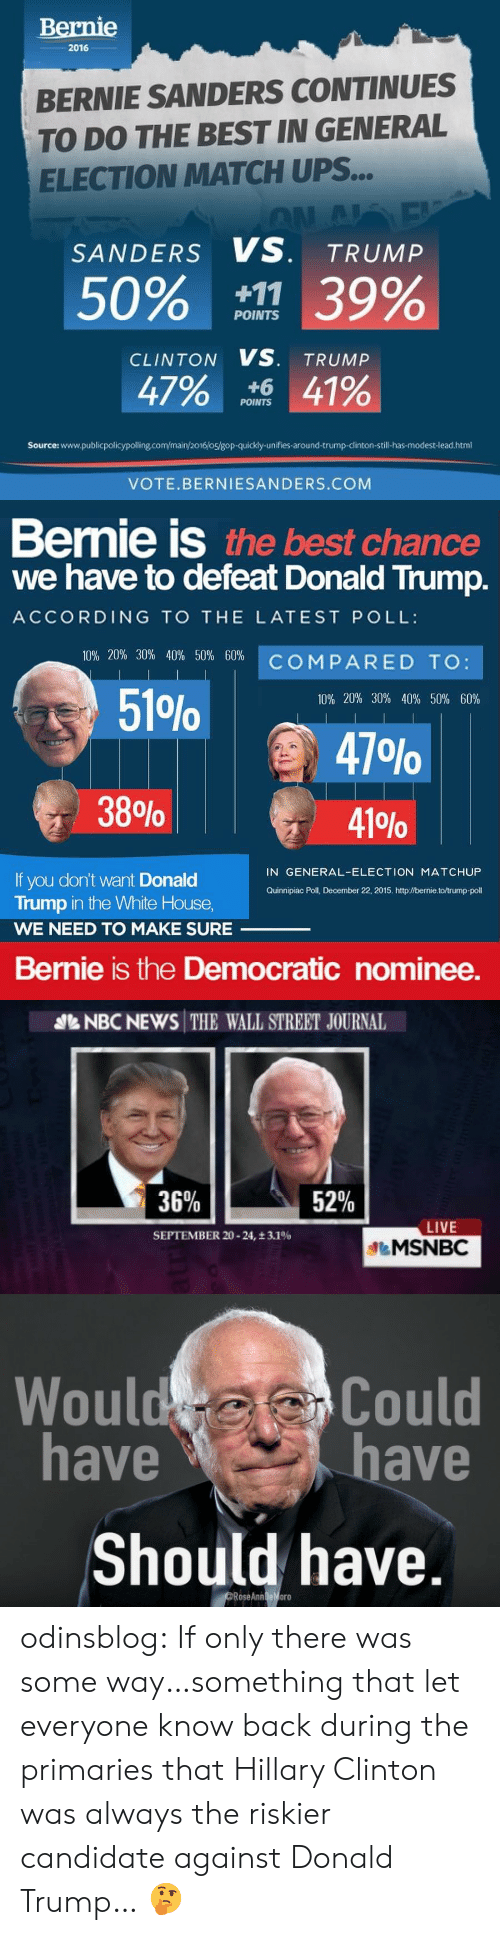 Bernie Sanders, Donald Trump, and Hillary Clinton: Вernie  2016  BERNIE SANDERS CONTINUES  TO DO THE BEST IN GENERAL  ELECTION MATCH UPS...  AN A E  SANDERS VS. TRUMP  50% 39%  POINTS  CLINTON VS. TRUMP  47% 4%  POINTS  Source: www.publicpolicypoling.com/main/2016/05/g0p-quickly-unifies-around-trump-dinton-stil-has-modest- lead.html  VOTE.BERNIESANDERS.COM   Bernie is the best chance  we have to defeat Donald Trump.  ACCORDING TO THE LATEST POLL:  10% 20% 30% 40% 50 % 60 %  COMPARED TO:  51P%  10% 20% 30% 40% 50 % 60 %  47 O%0  38%  41 %  IN GENERAL-ELECTION MATCHUP  If you don't want Donald  Trump in the White House,  Quinnipiac Poll, December 22, 2015. http://bernie.to/trump-poll  WE NEED TO MAKE SURE  Bernie is the Democratic nominee.   NBC NEWS THE WALL STREET JOURNAL  36%  52%  LIVE  SEPTEMBER 20-24, 3.1%  MSNBC   Would Could  have  have  Should have  DRoseAnnDeMore odinsblog:  If only there was some way…something that let everyone know back during the primaries that Hillary Clinton was always the riskier candidate against Donald Trump… 🤔